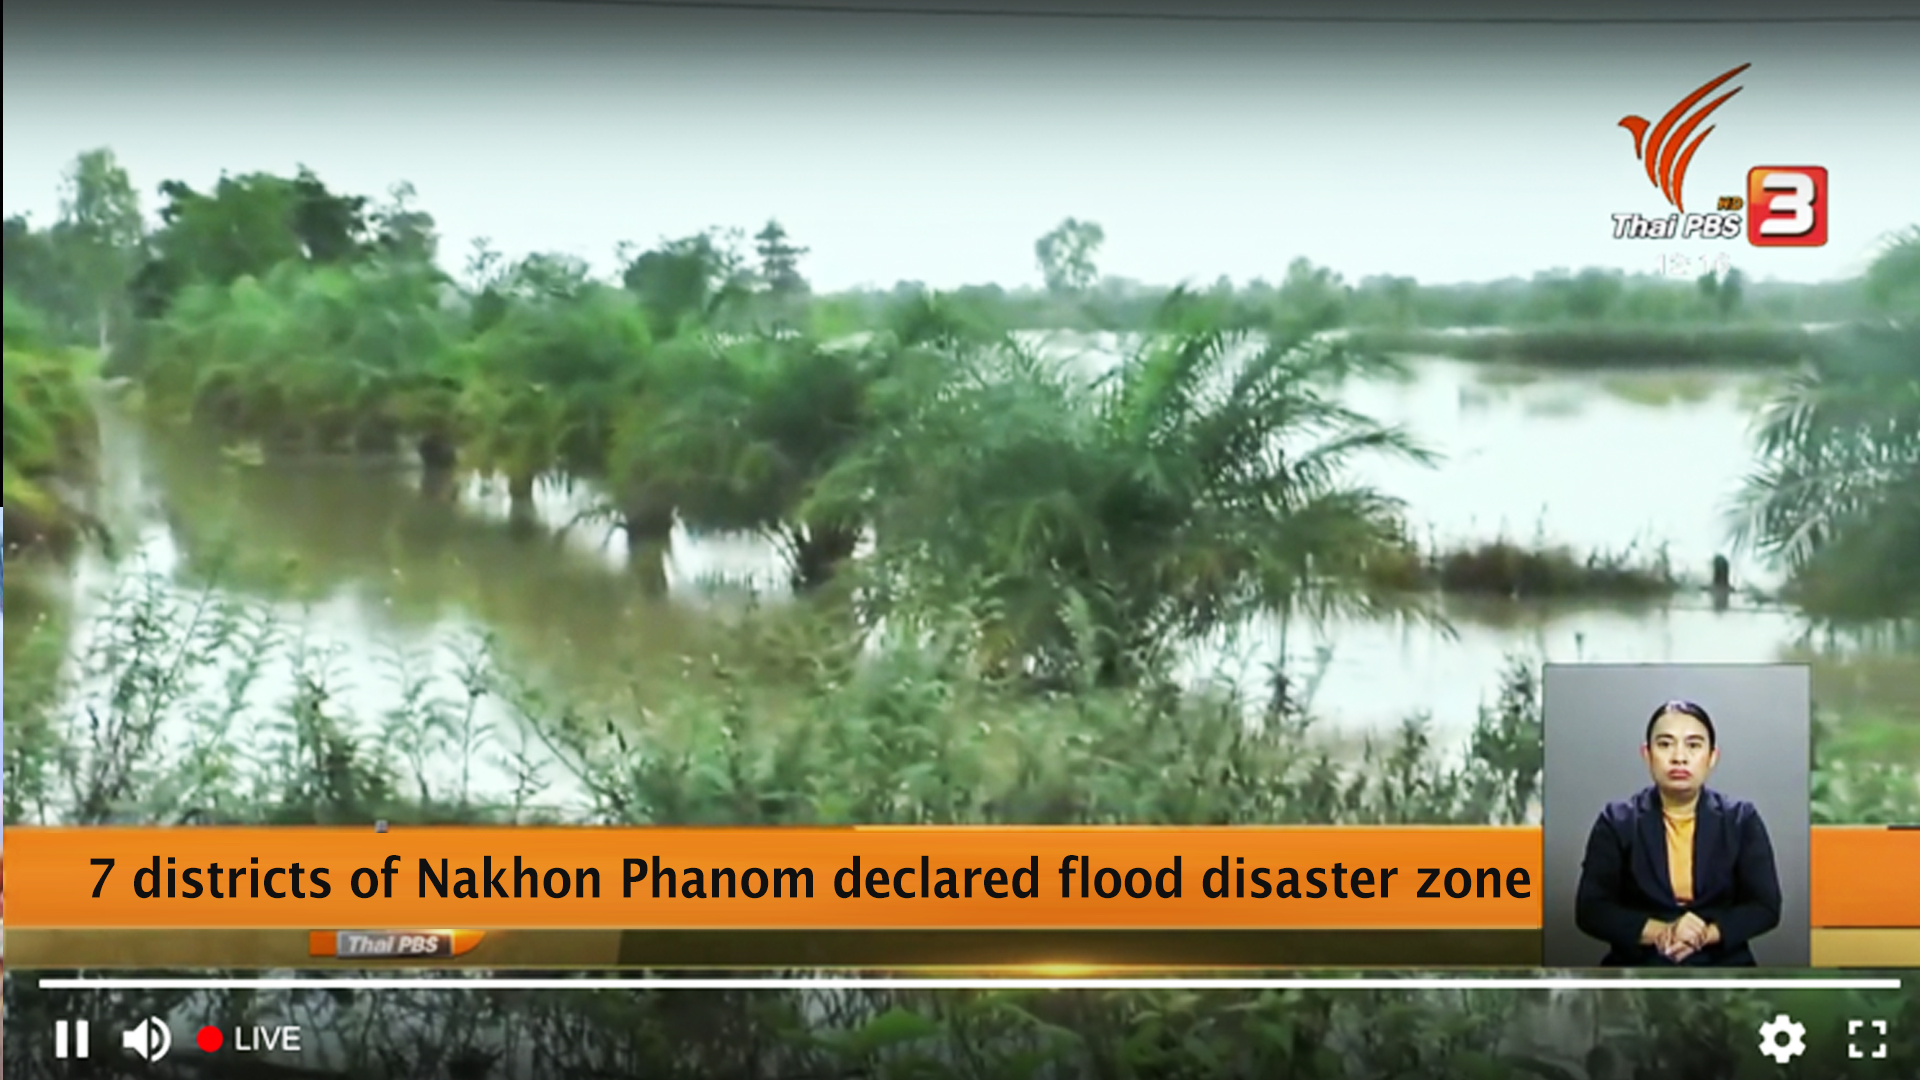 7 districts of Nakhon Phanom declared flood disaster zone